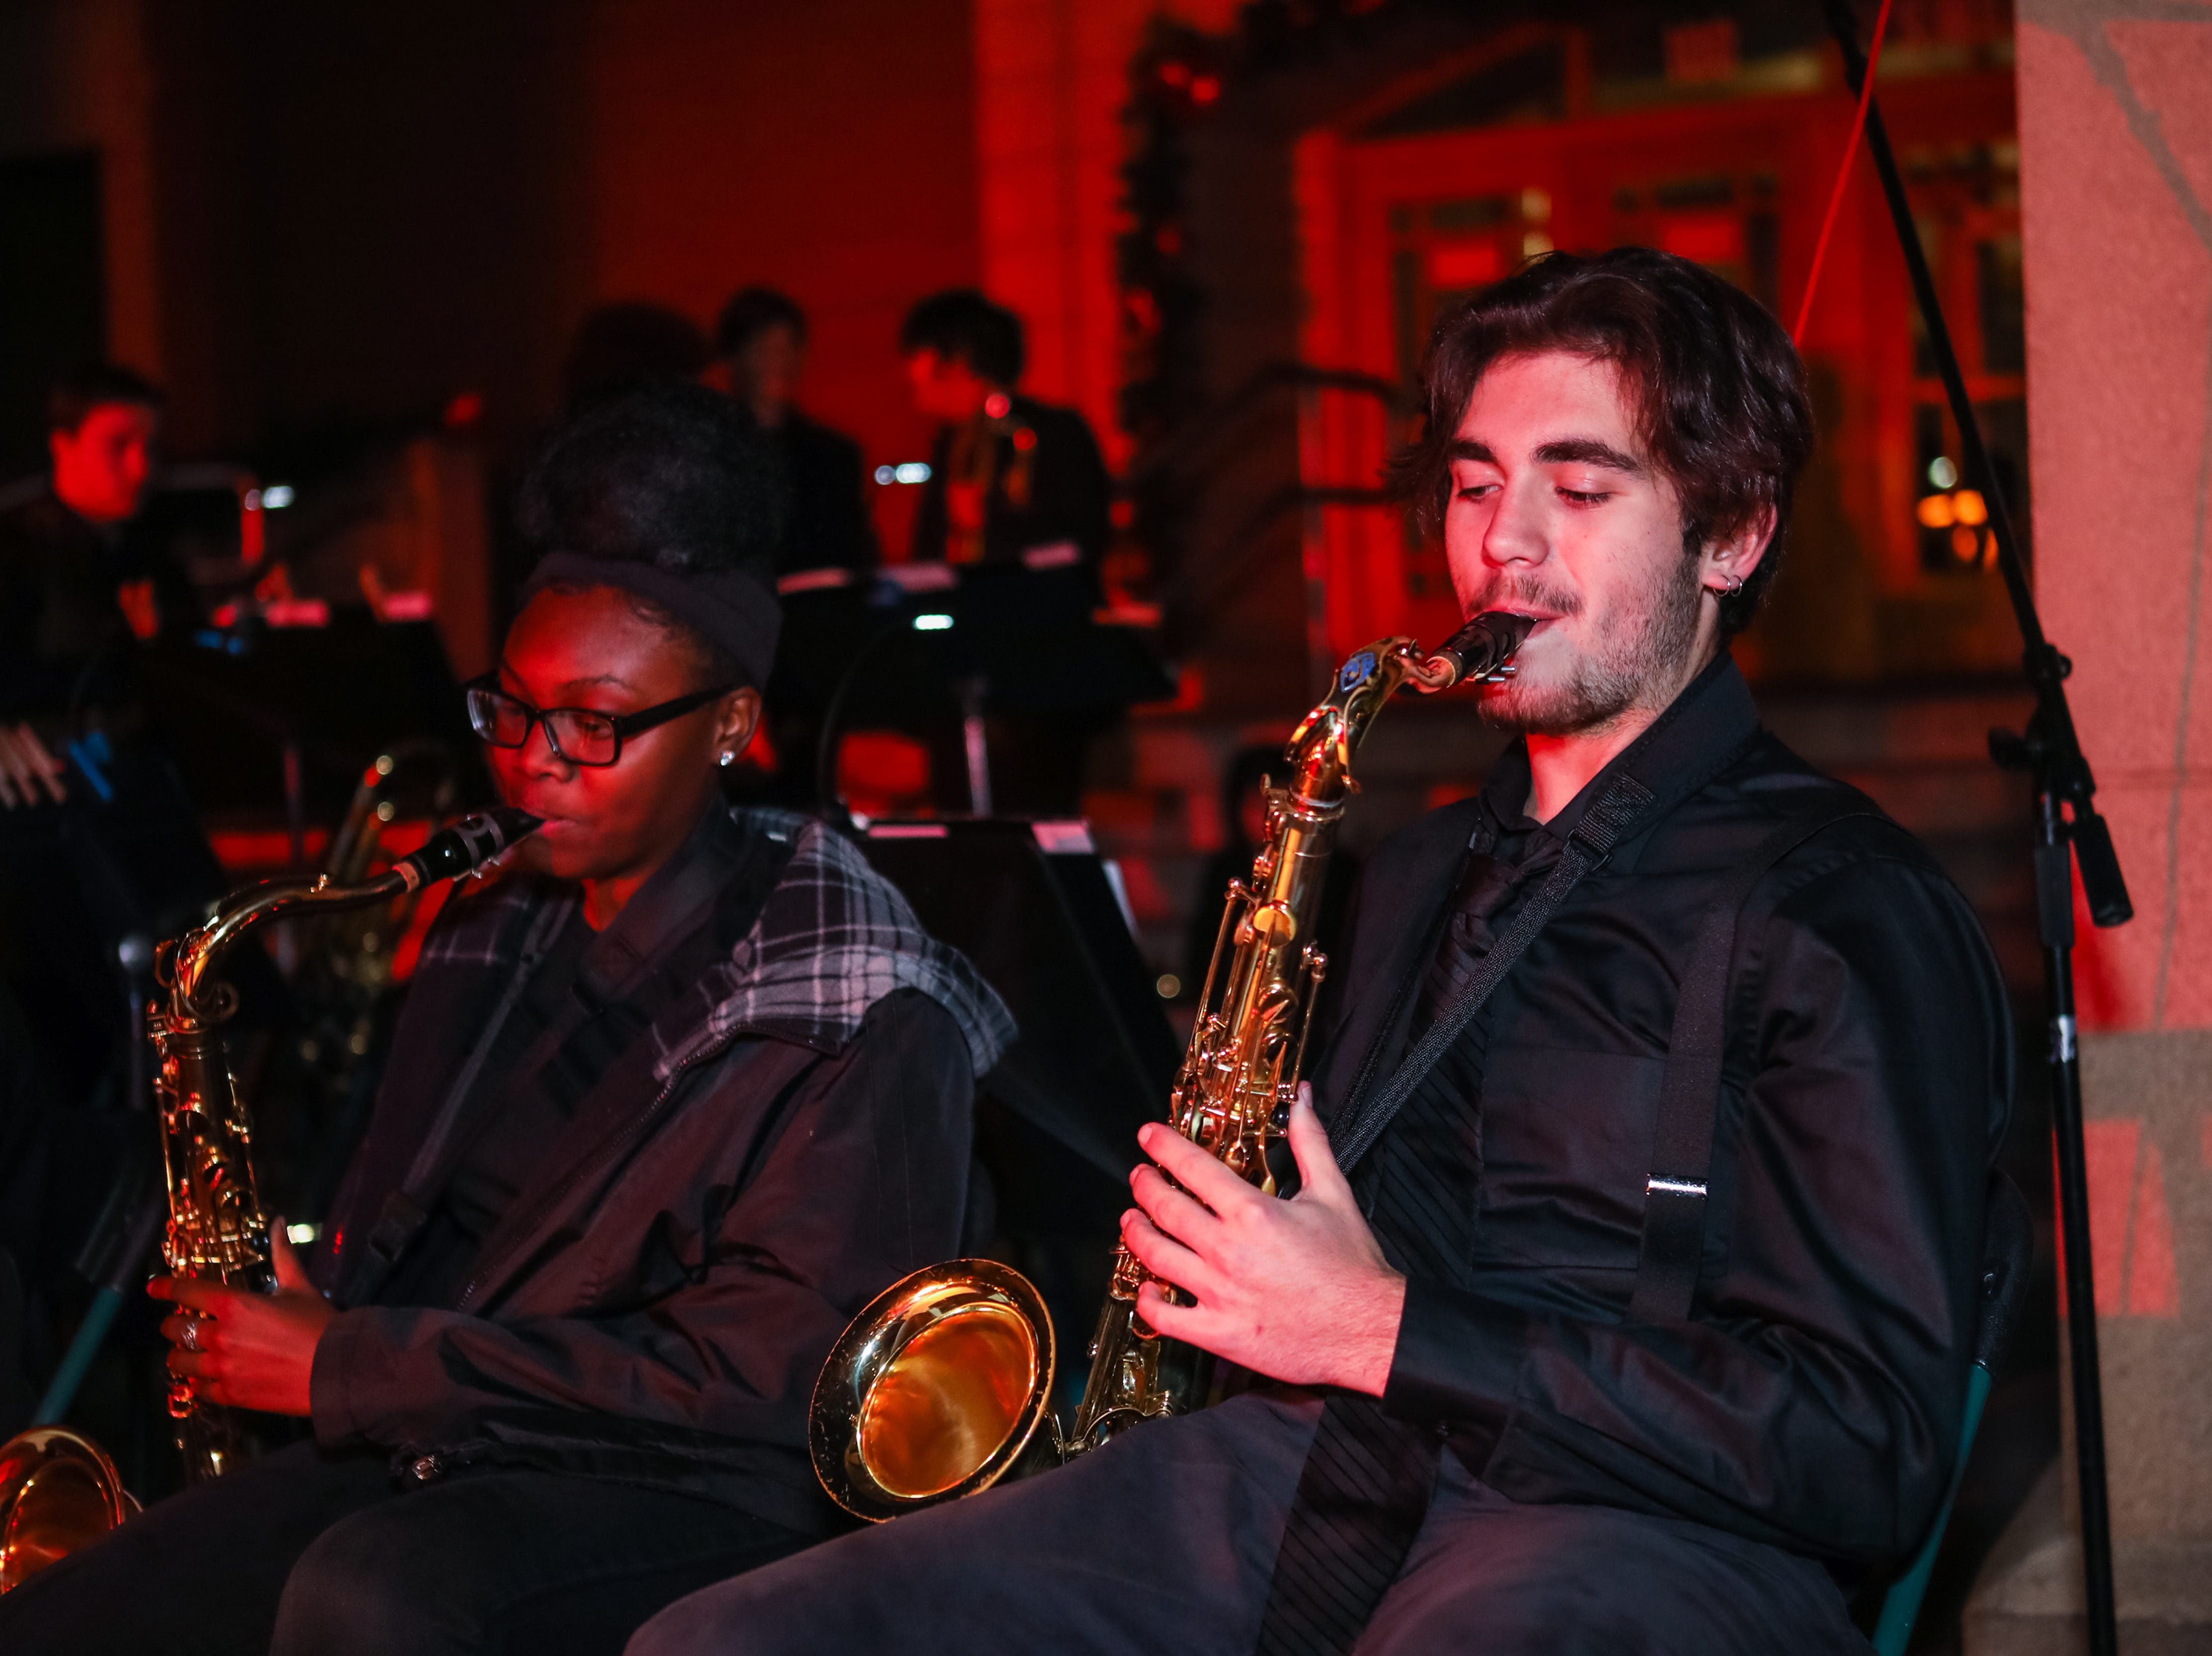 Zyeah Sullivan and Gavin Worley play the sax during the Piedmont Natural Gas Holiday Walk and Christmas Tree Lighting in downtown Anderson